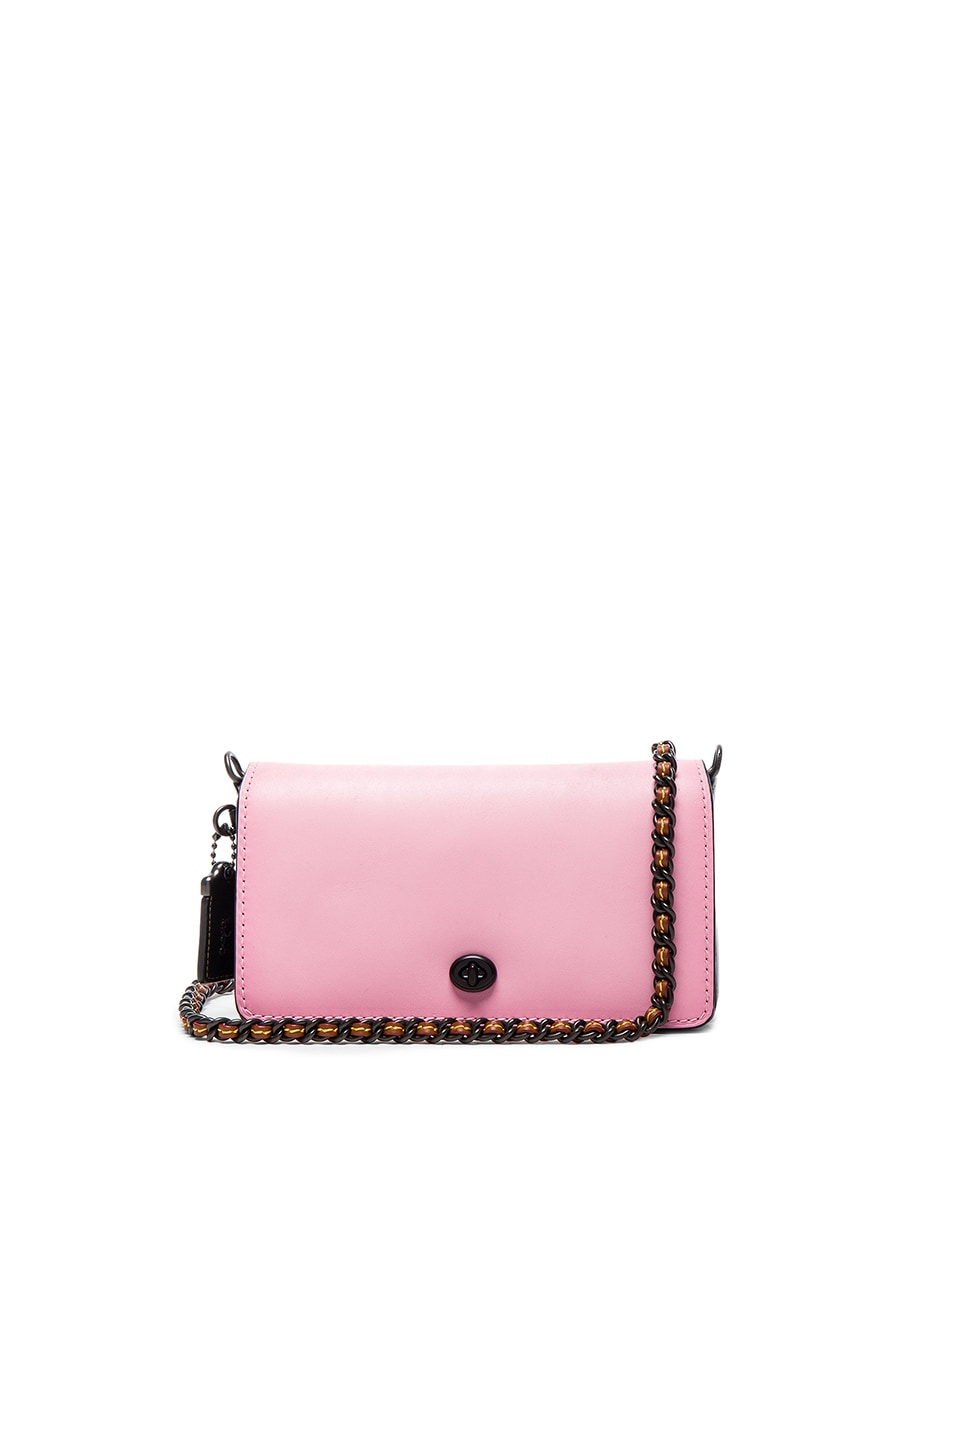 Image 1 of Coach 1941 Colorblock Leather Dinky Bag in Petal & Black